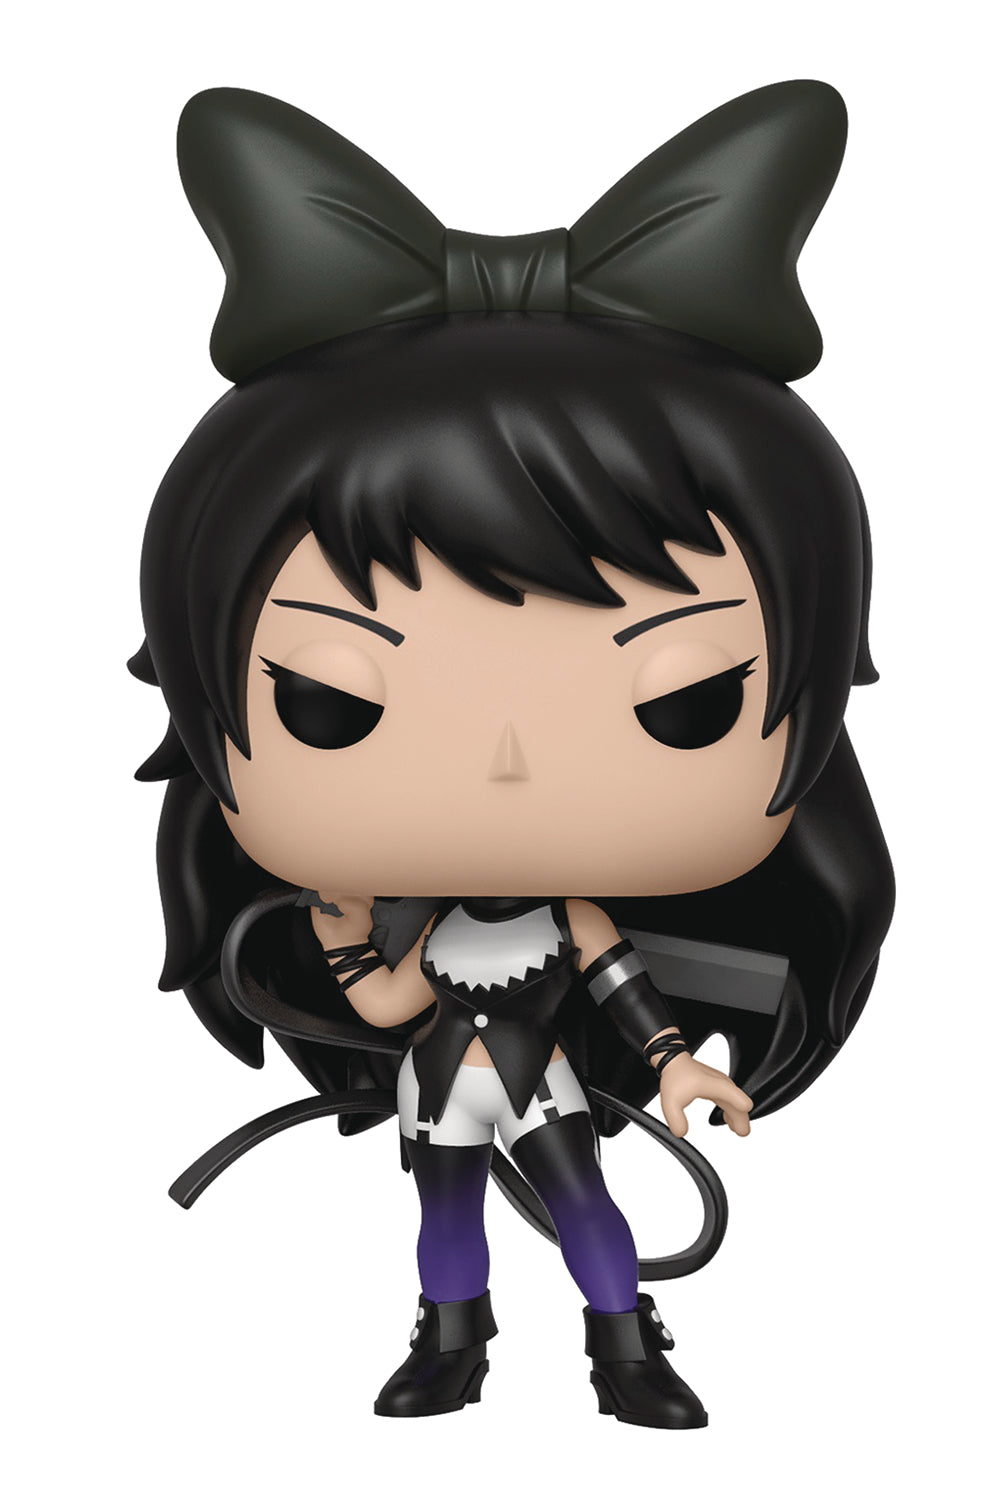 POP ANIMATION RWBY BLAKE BELLADONNA 3.75